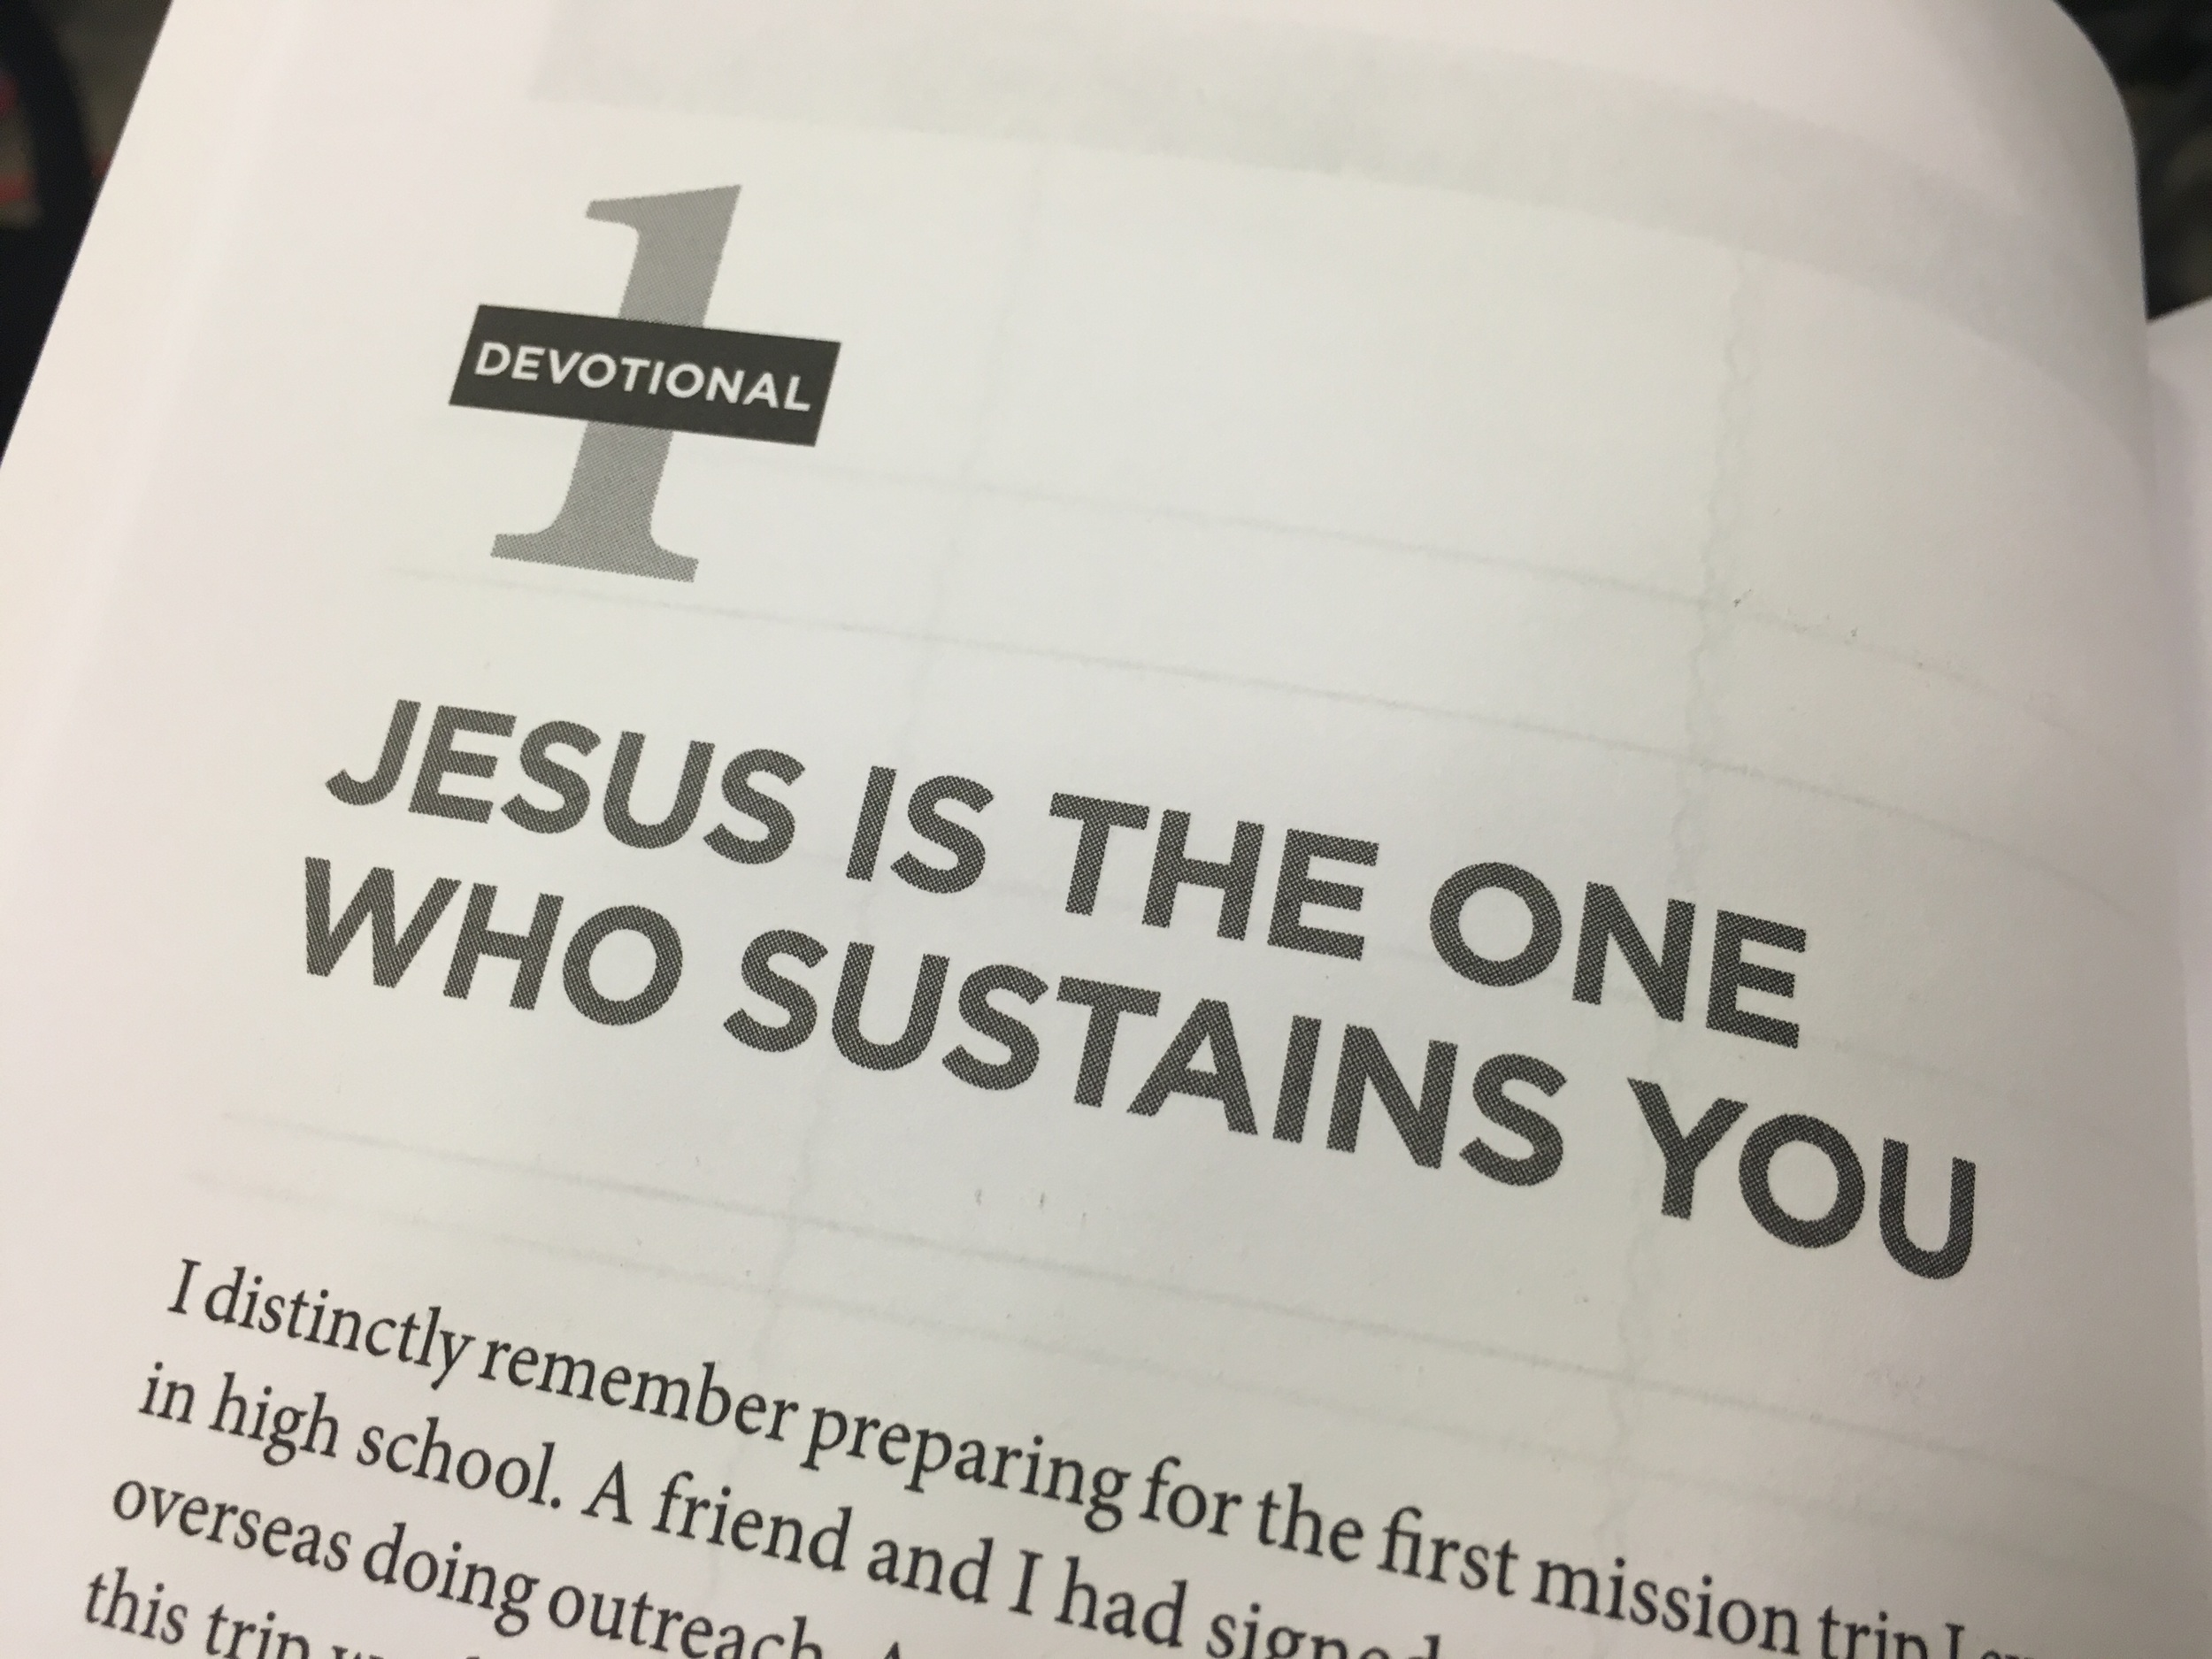 Pray the students find Jesus as their main source for life